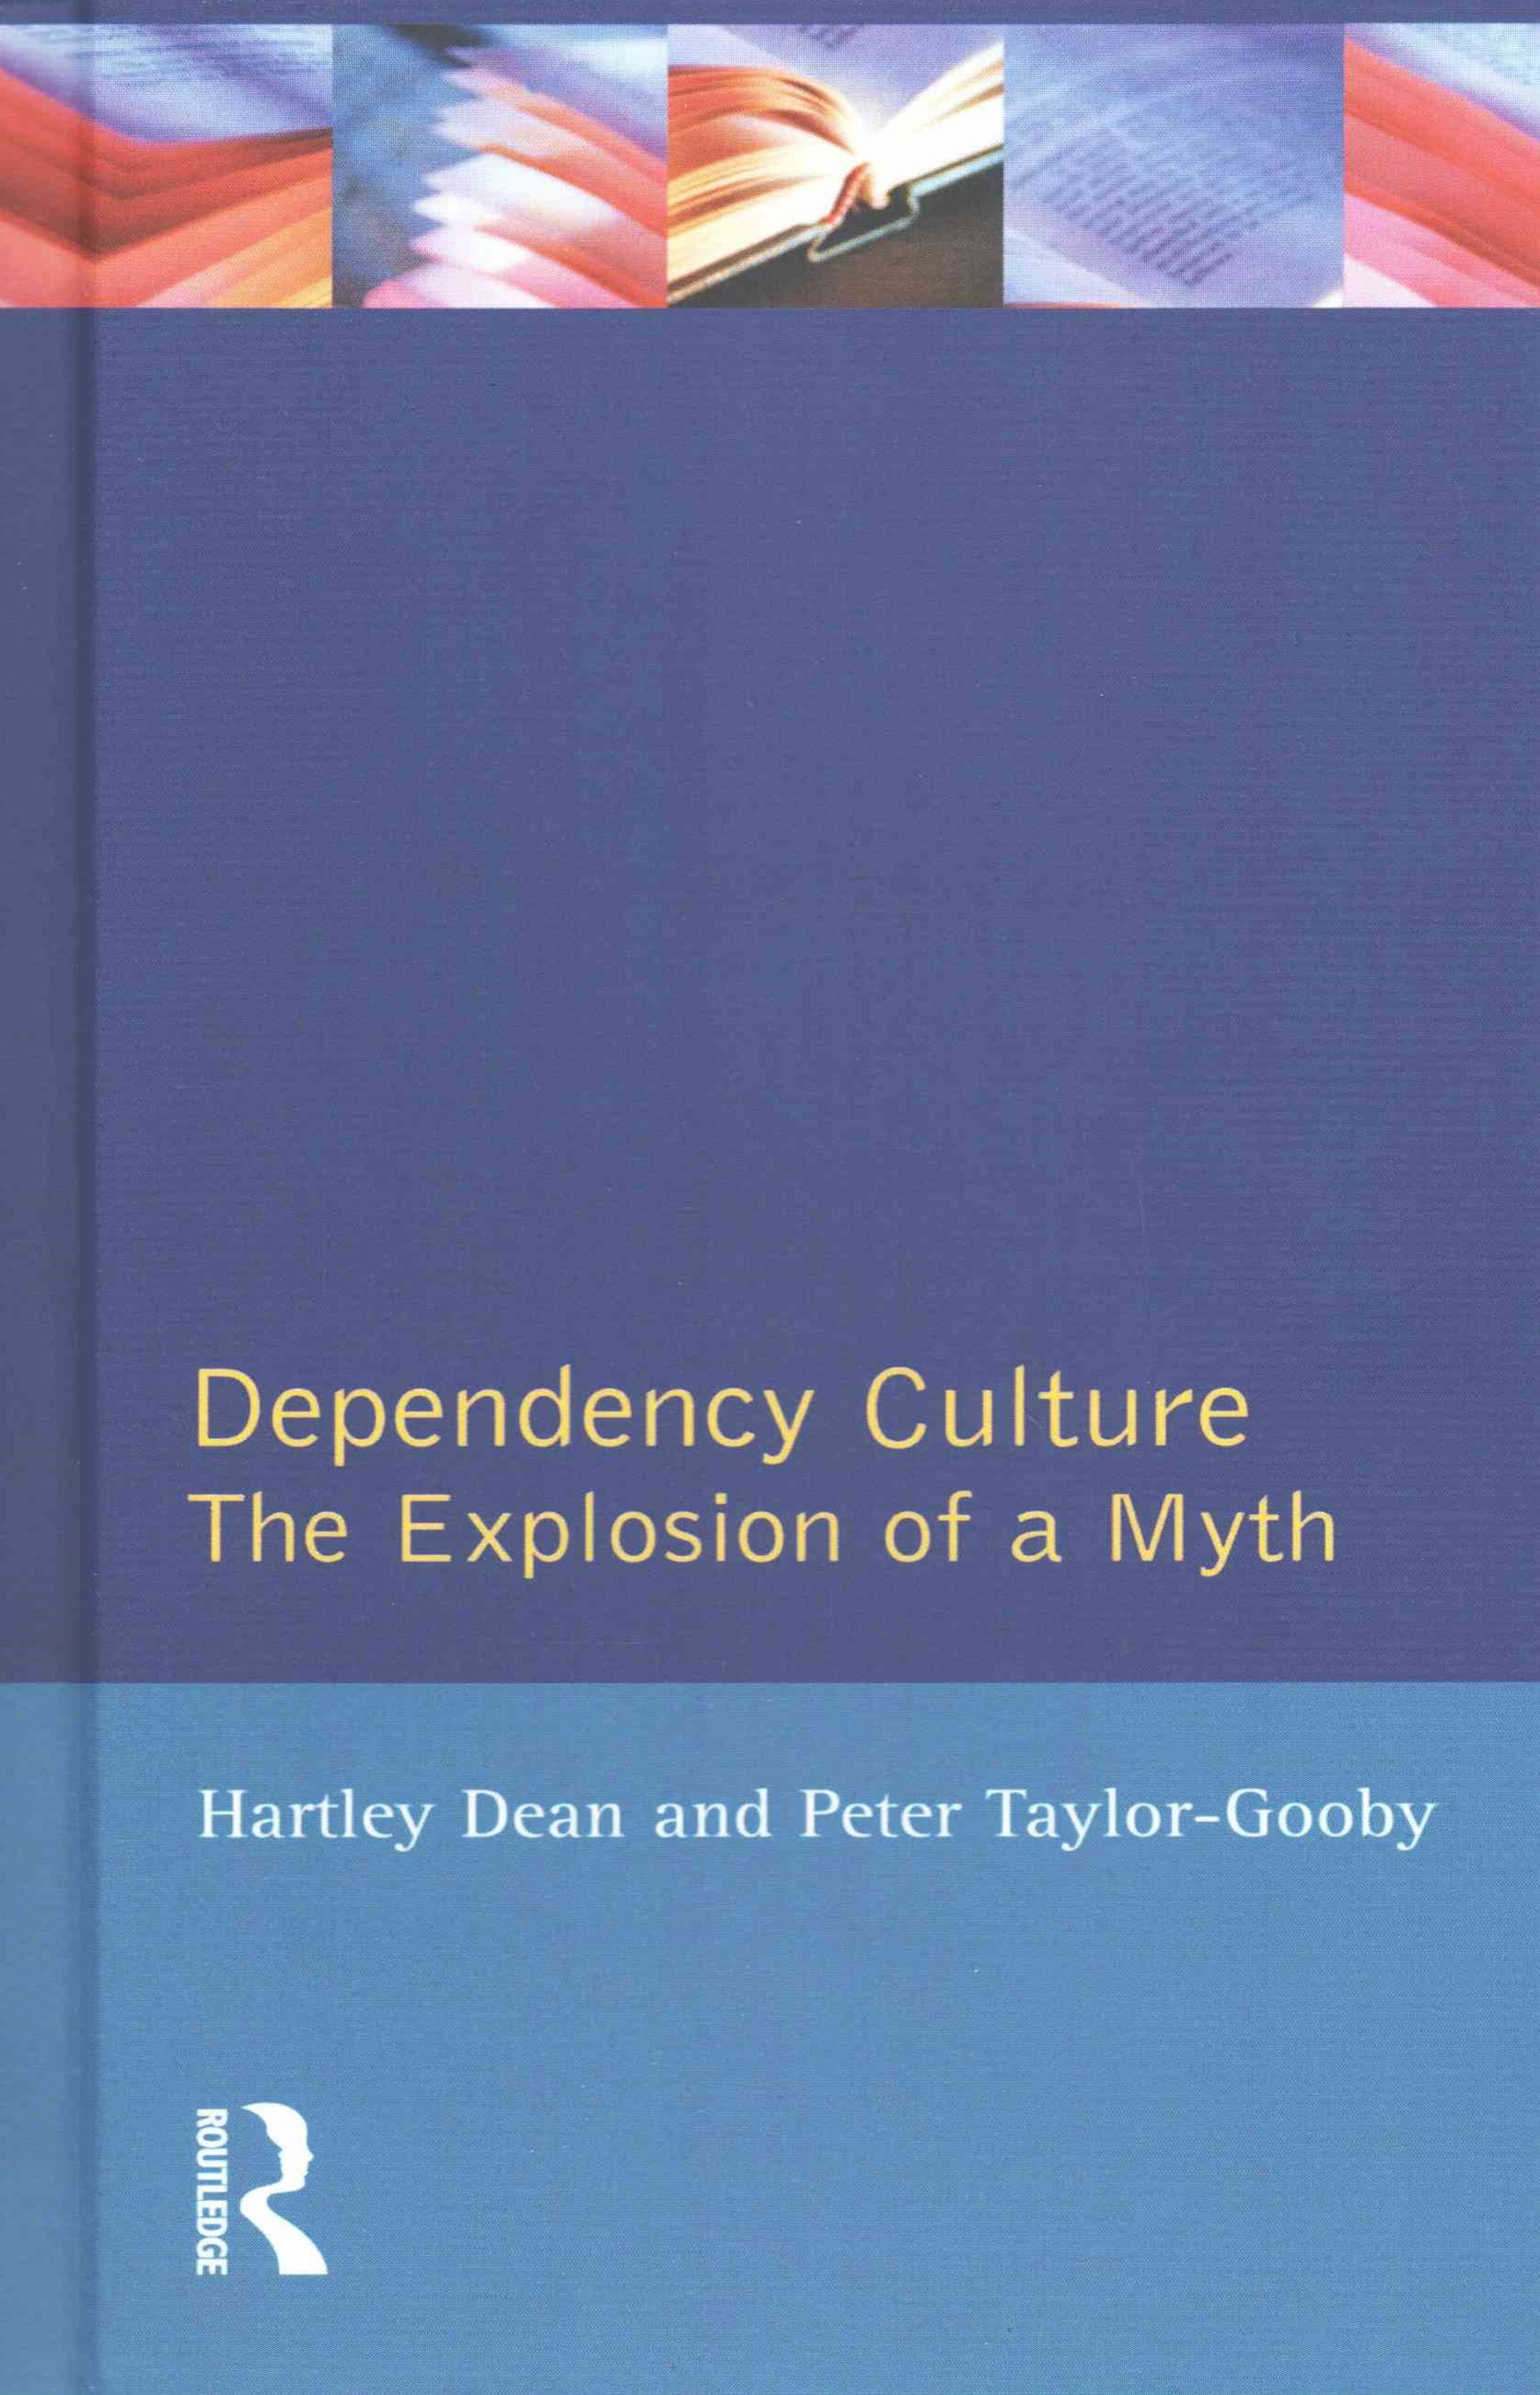 Dependency Culture